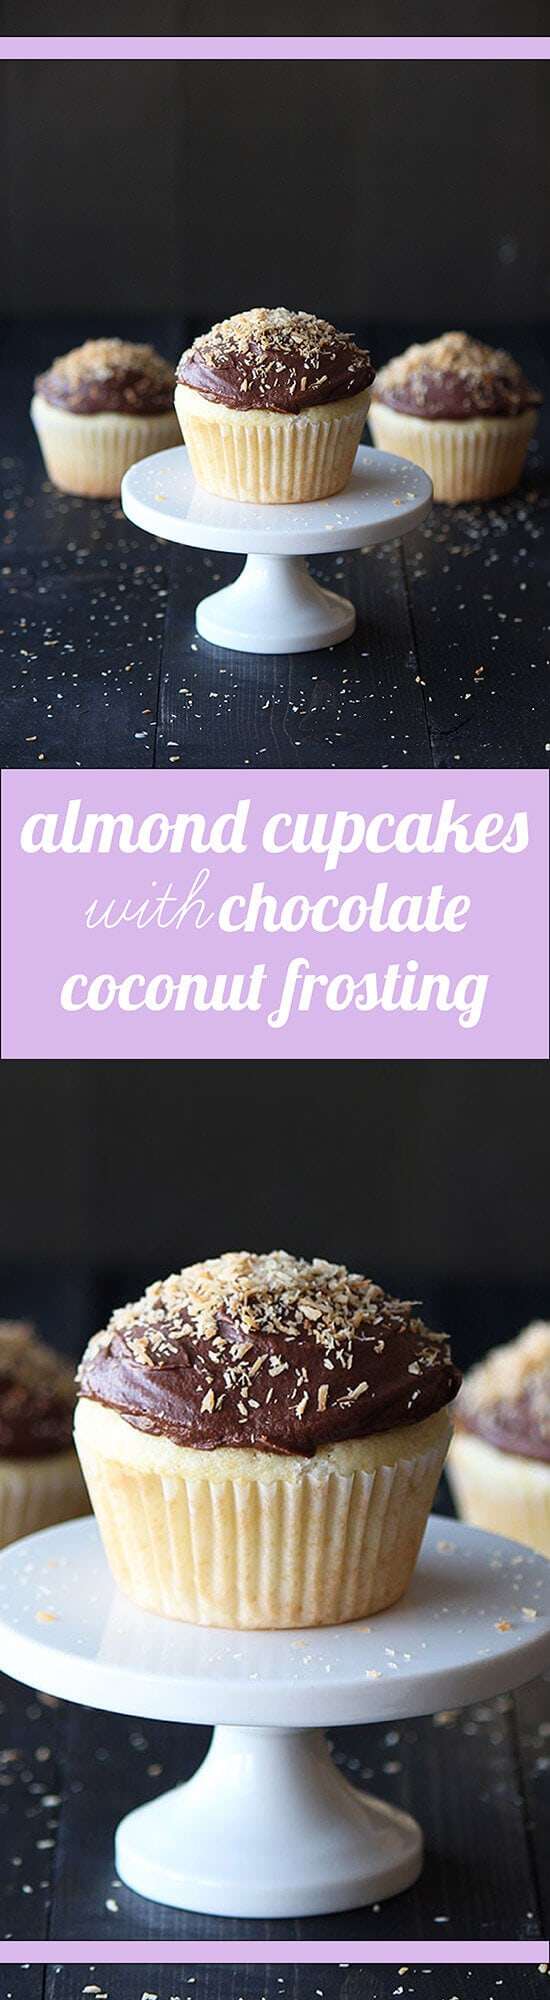 Almond Cupcakes with Chocolate Coconut Frosting